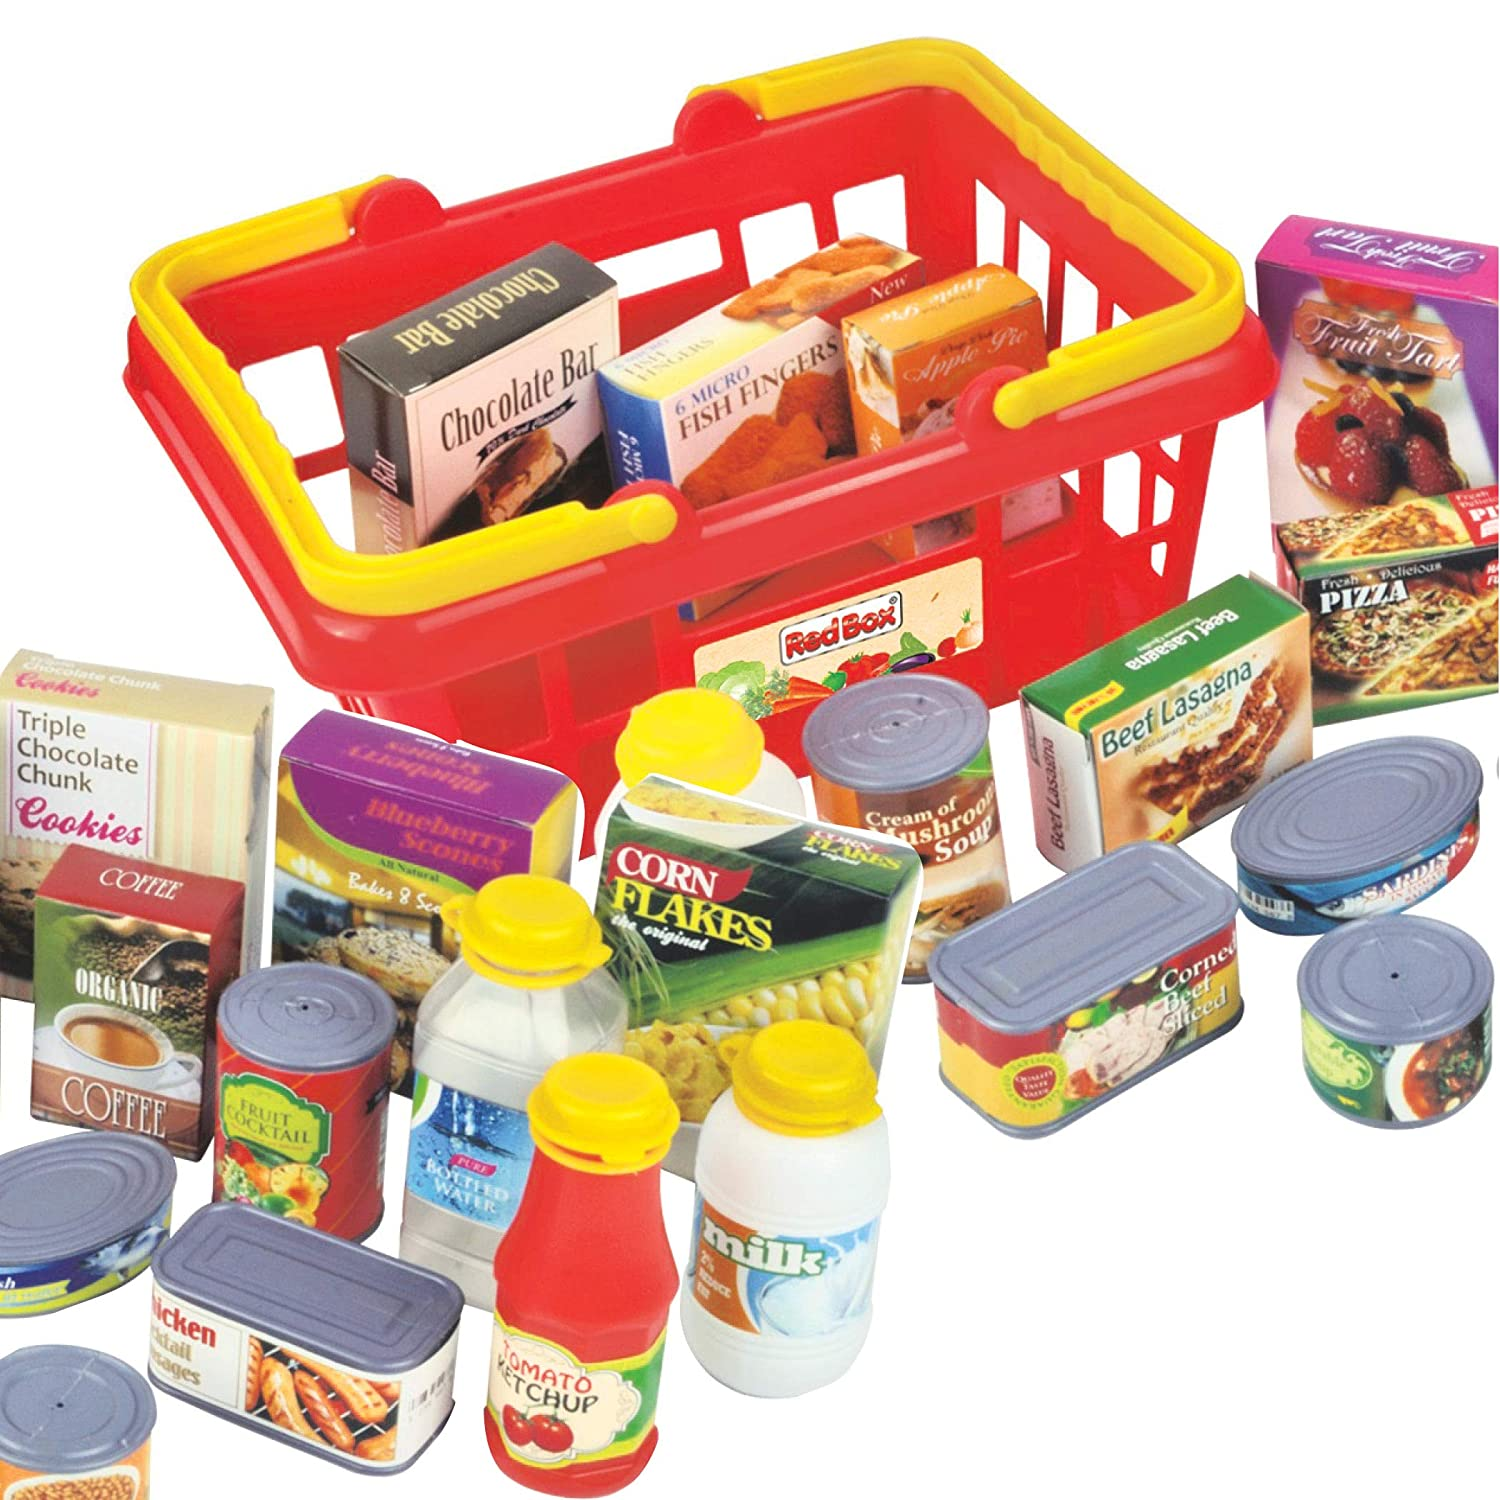 Constructive Playthings RED-162 Play Food Basket for Children